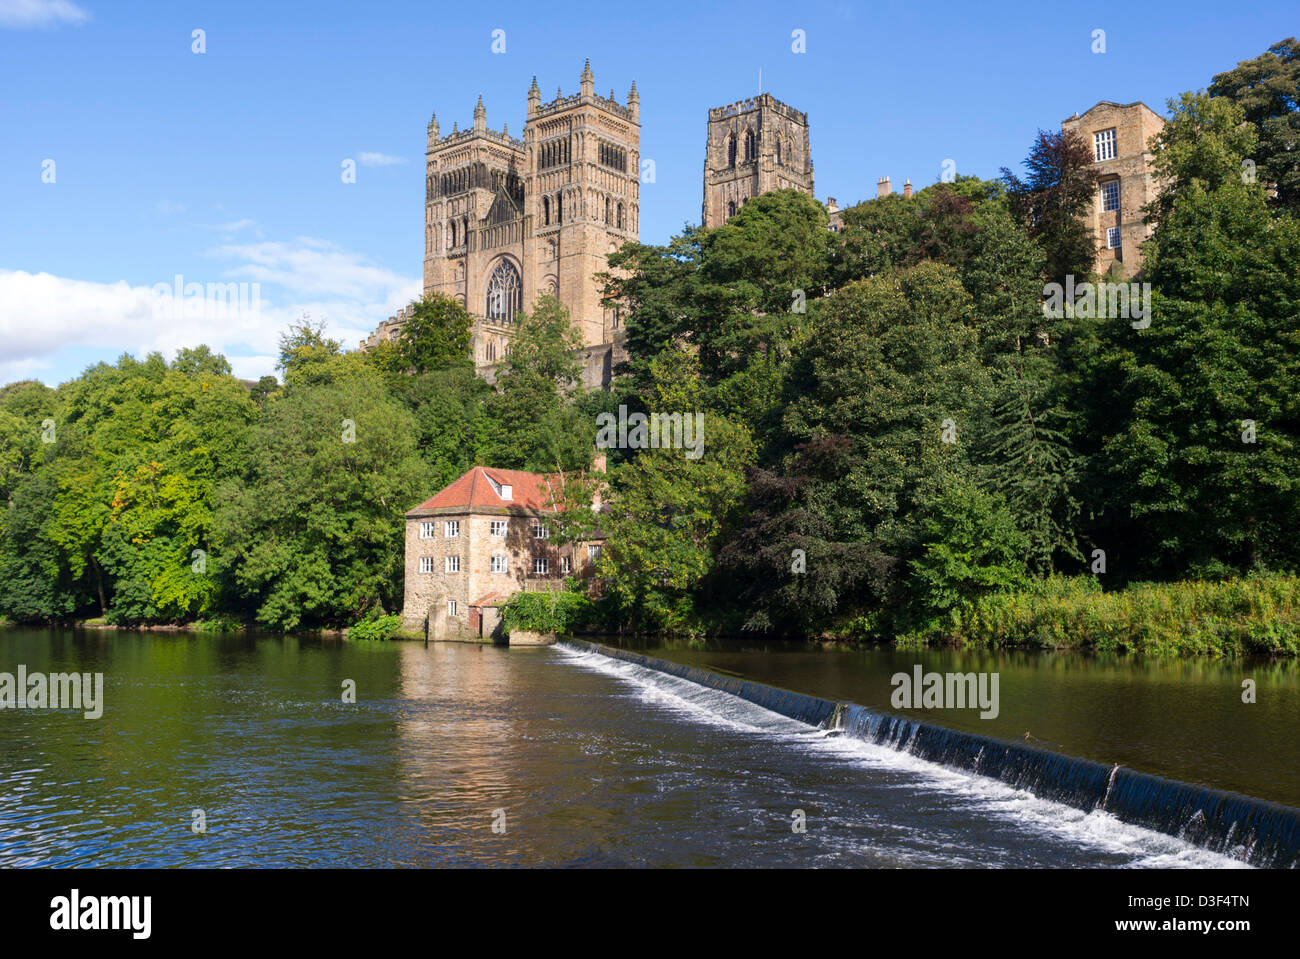 Durham Cathedral and the River Wear, Durham England - Stock Image